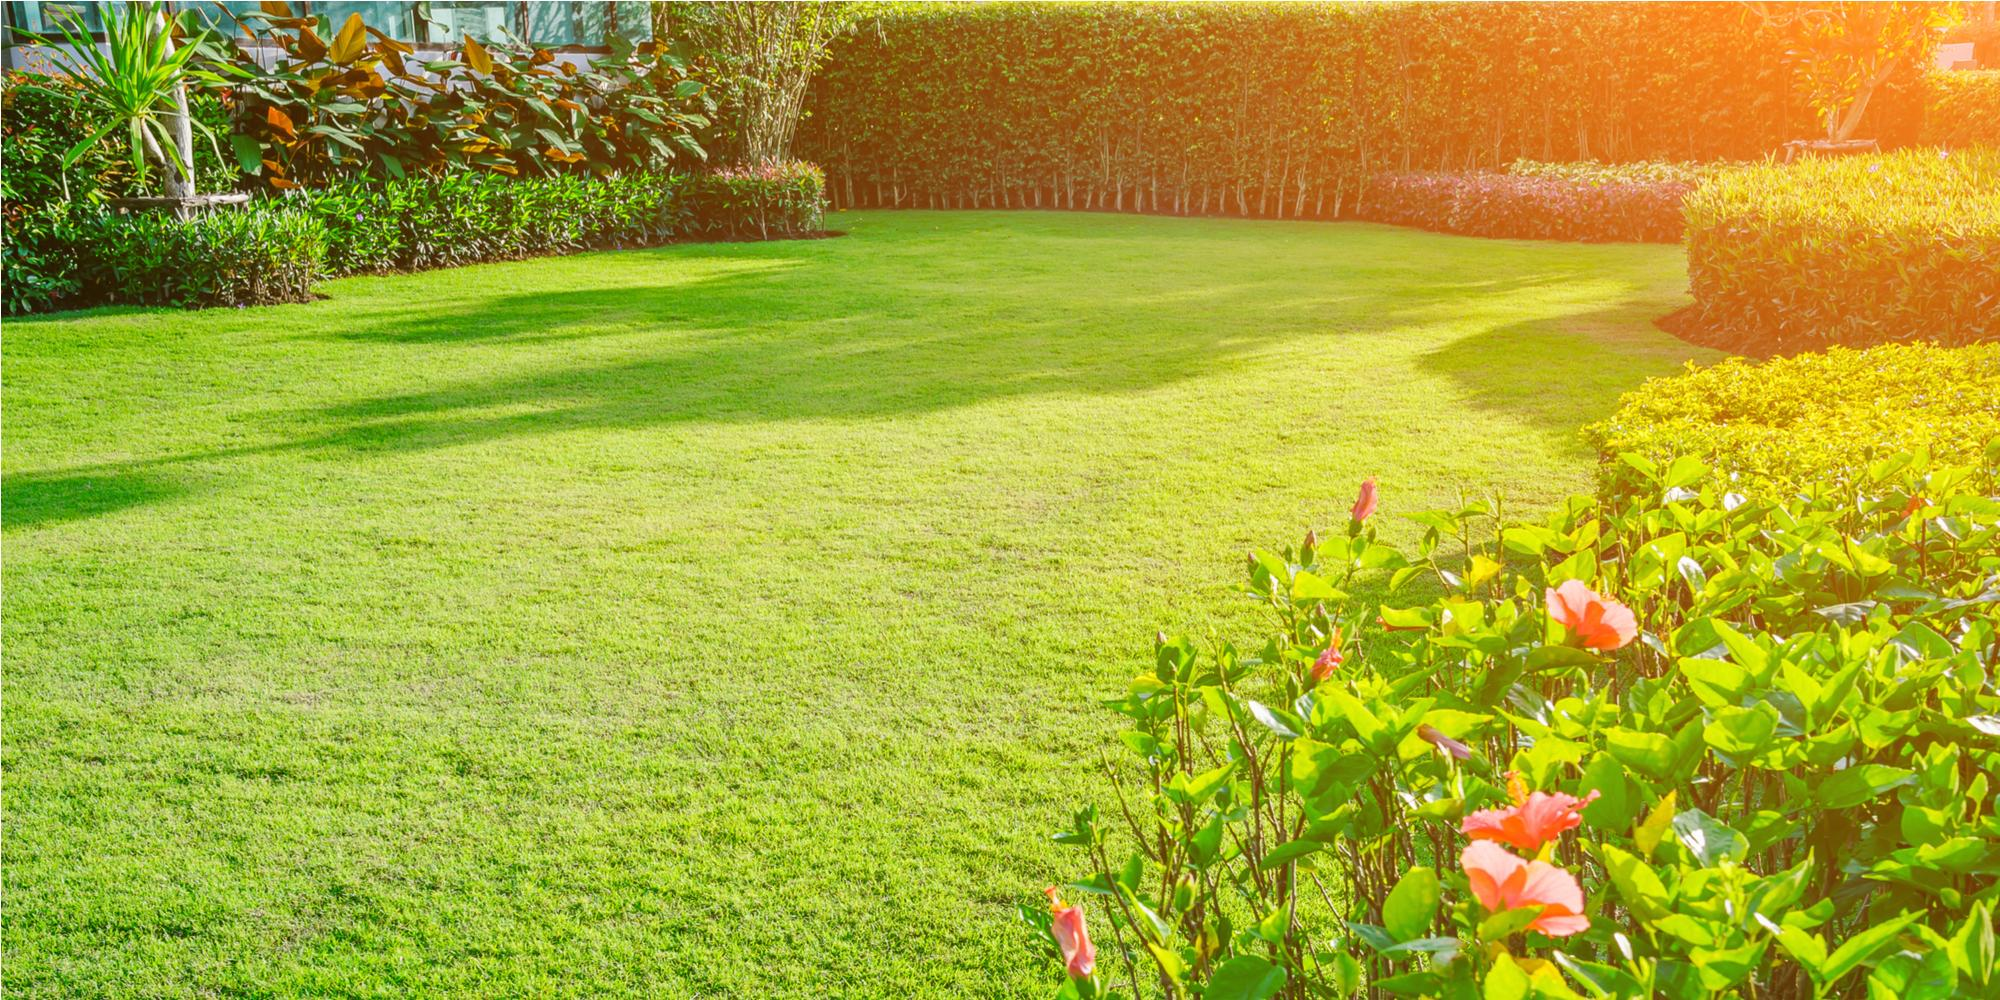 Lawn Maintenance - 4 Tips to a Greener Lawn - On the Write Side